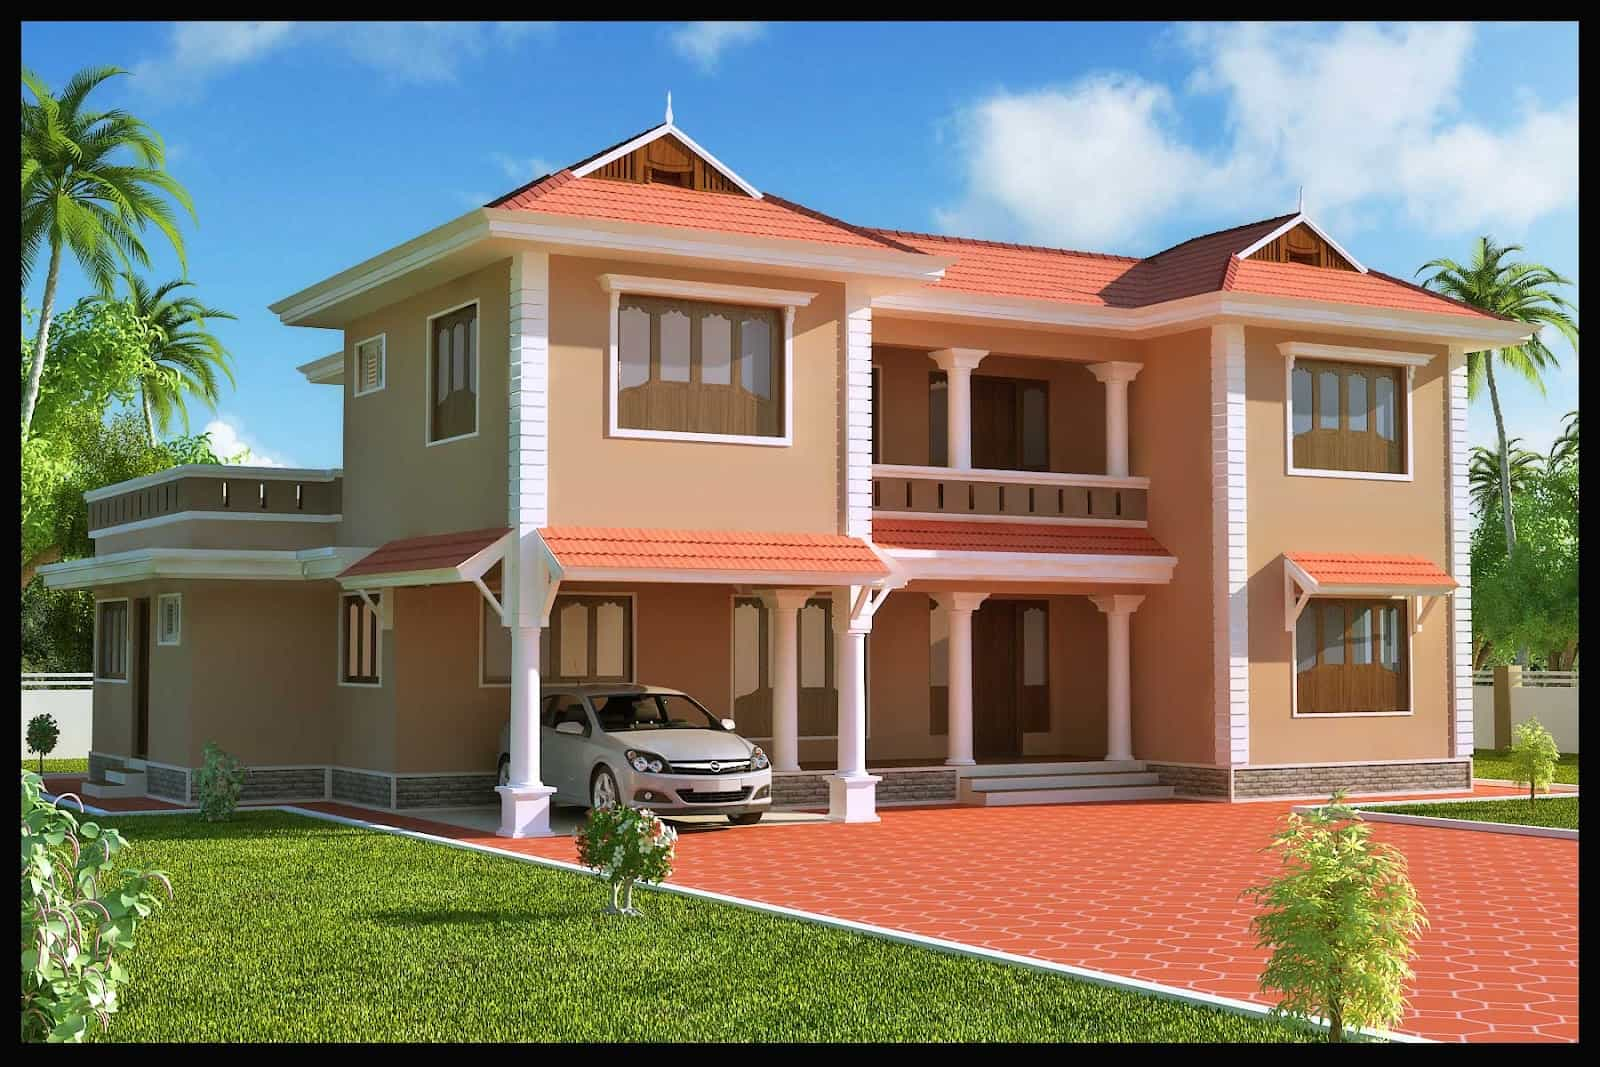 Duplex Kerala Home Design At 2618 Sq.ft